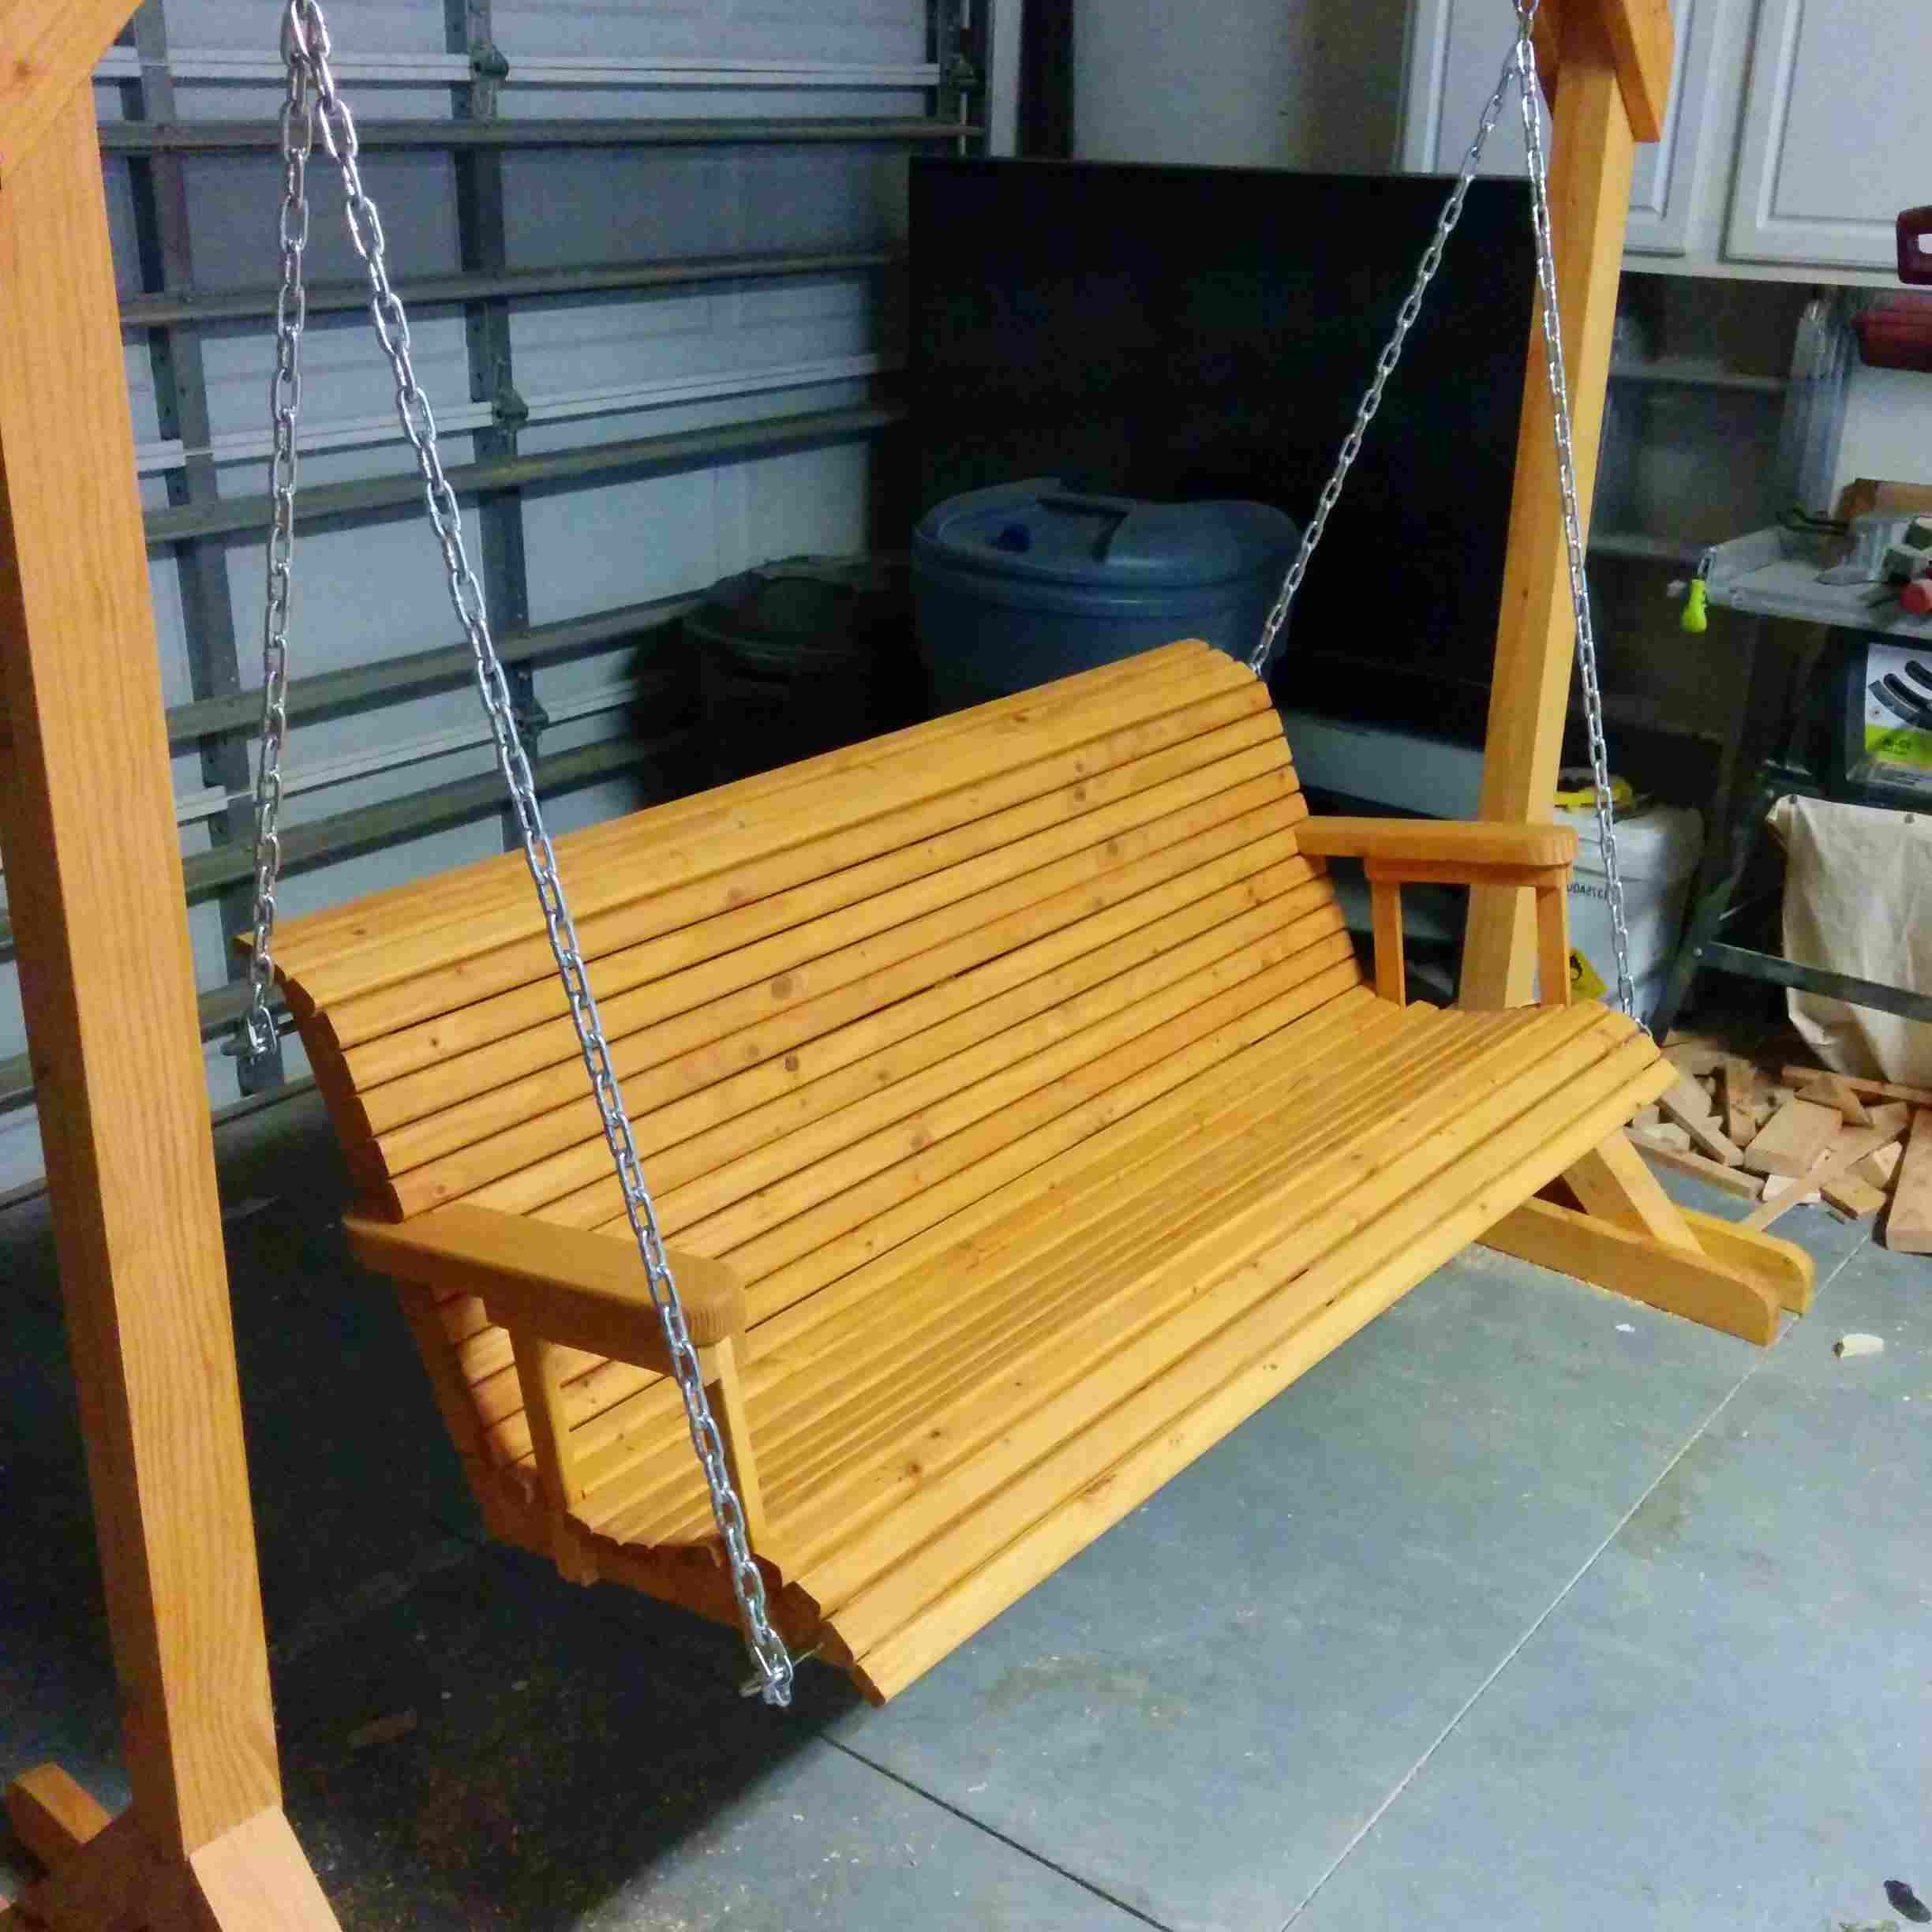 2 Person Natural Cedar Wood Outdoor Swings With Favorite 12 Free Porch Swing Plans To Build At Home (View 18 of 25)